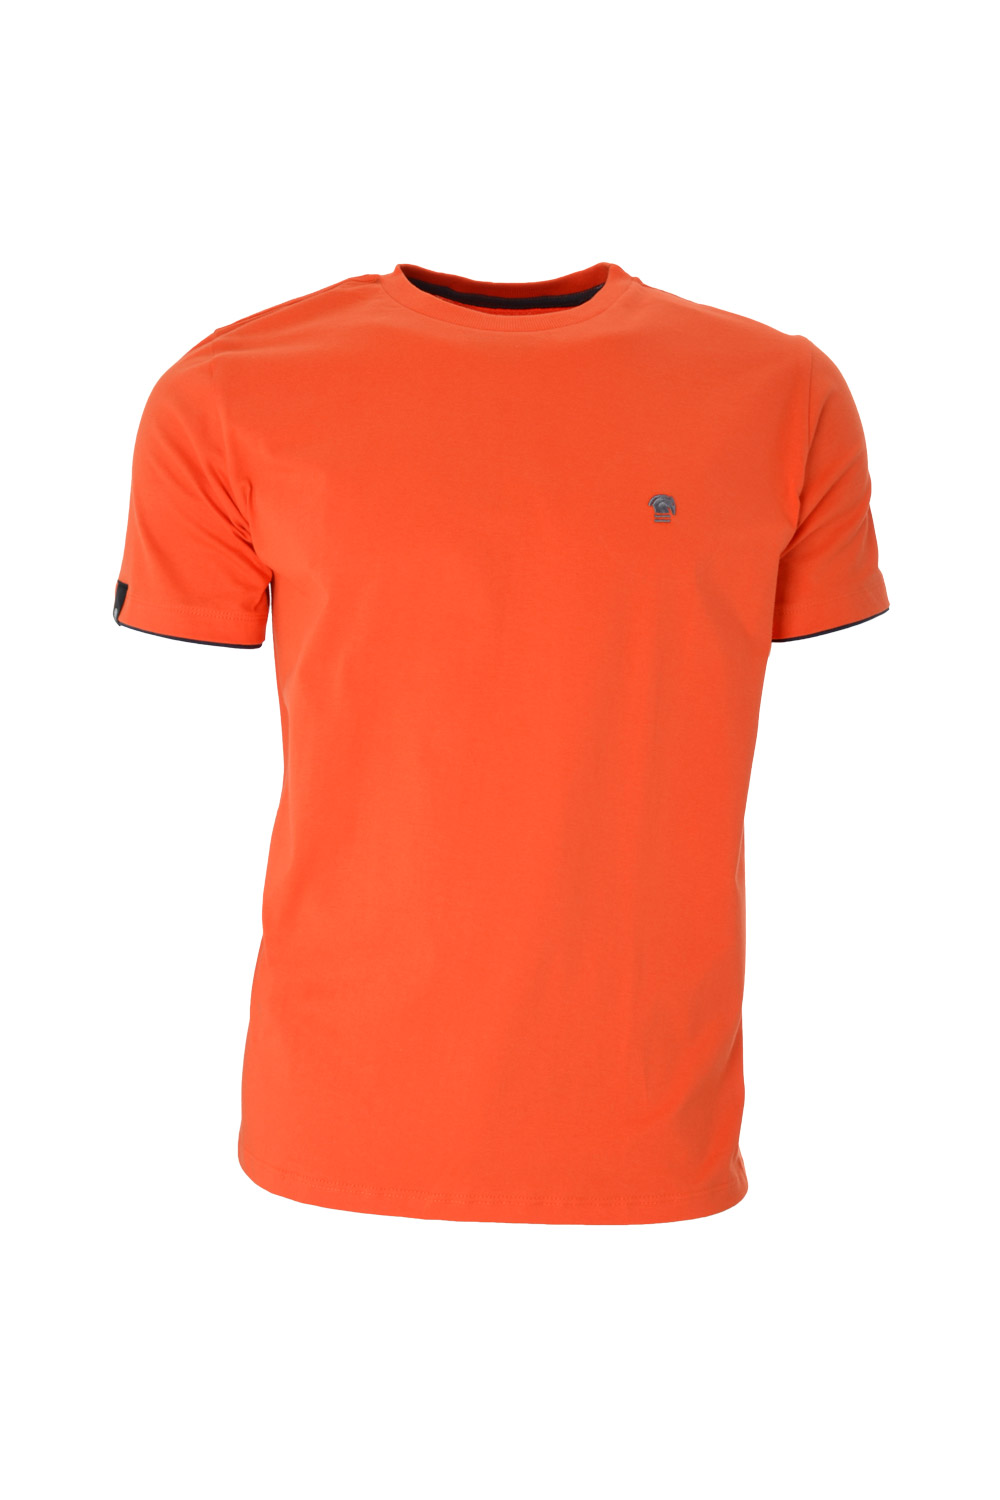 CAMISETA MC BLUES SUPER SLIM ALGODAO GOLA C LISO LARANJA ESCURO